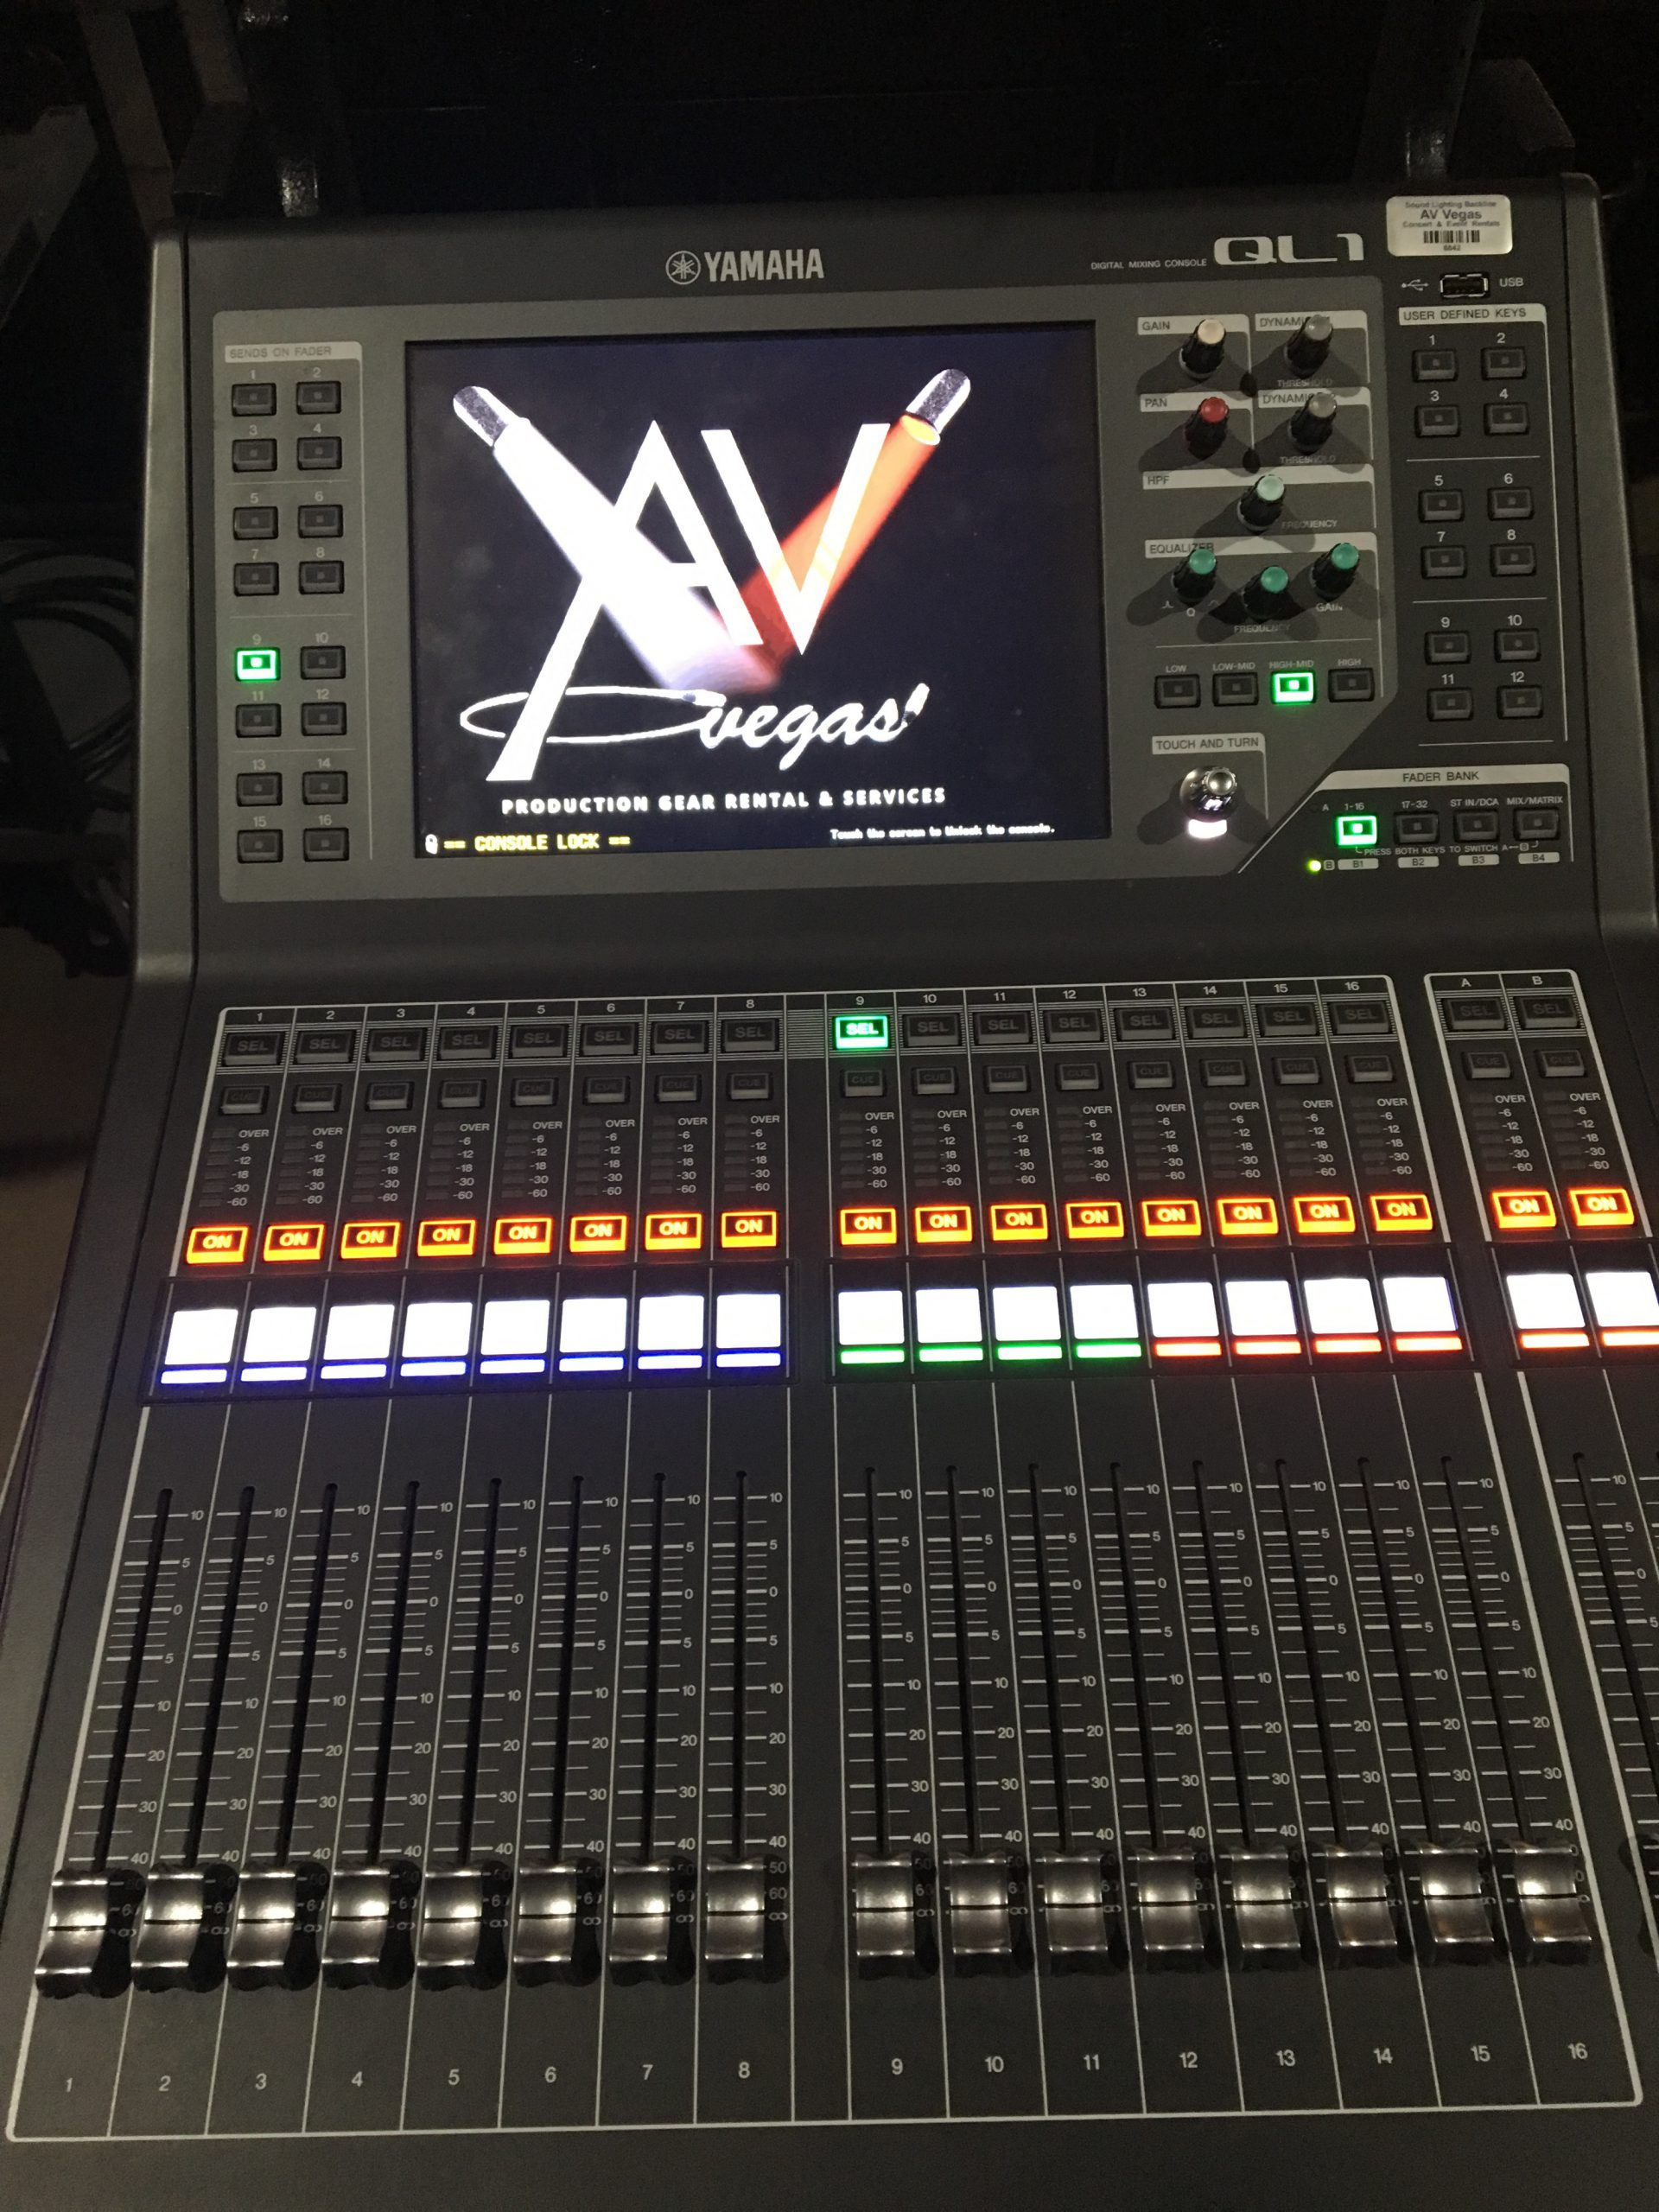 Digital audio console with AV Vegas logo programmed into it